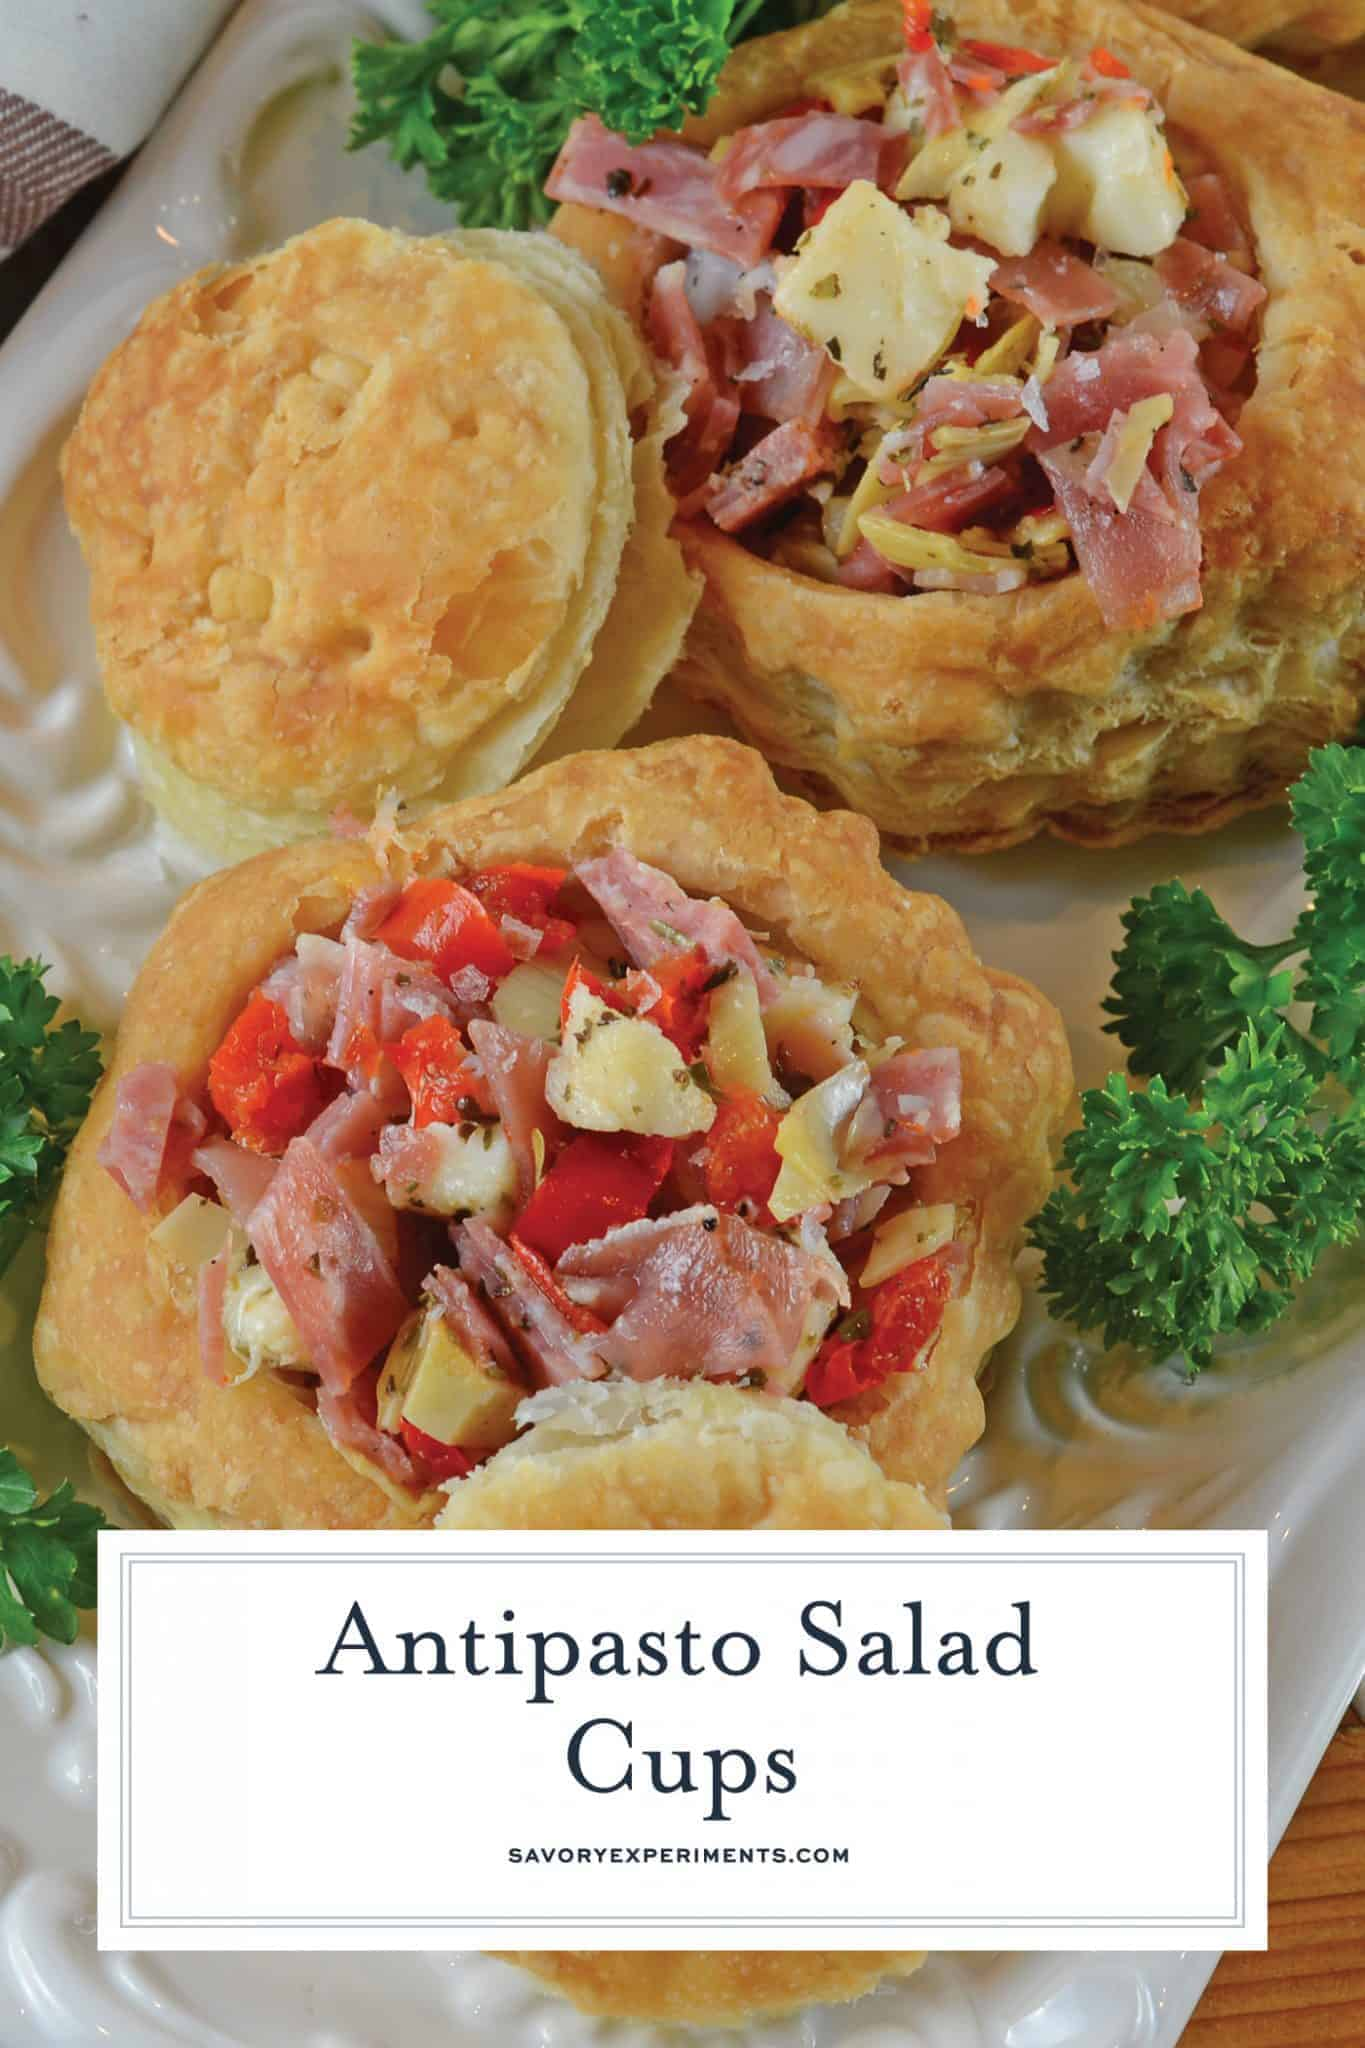 Antipasto Salad Cups are made of chopped salami, prosciutto, sopressata, mozzarella cheese, peppadews and artichokes. The best way to eat salad with your fingers! #nocookappetizers #antipastosalad www.savoryexperiments.com